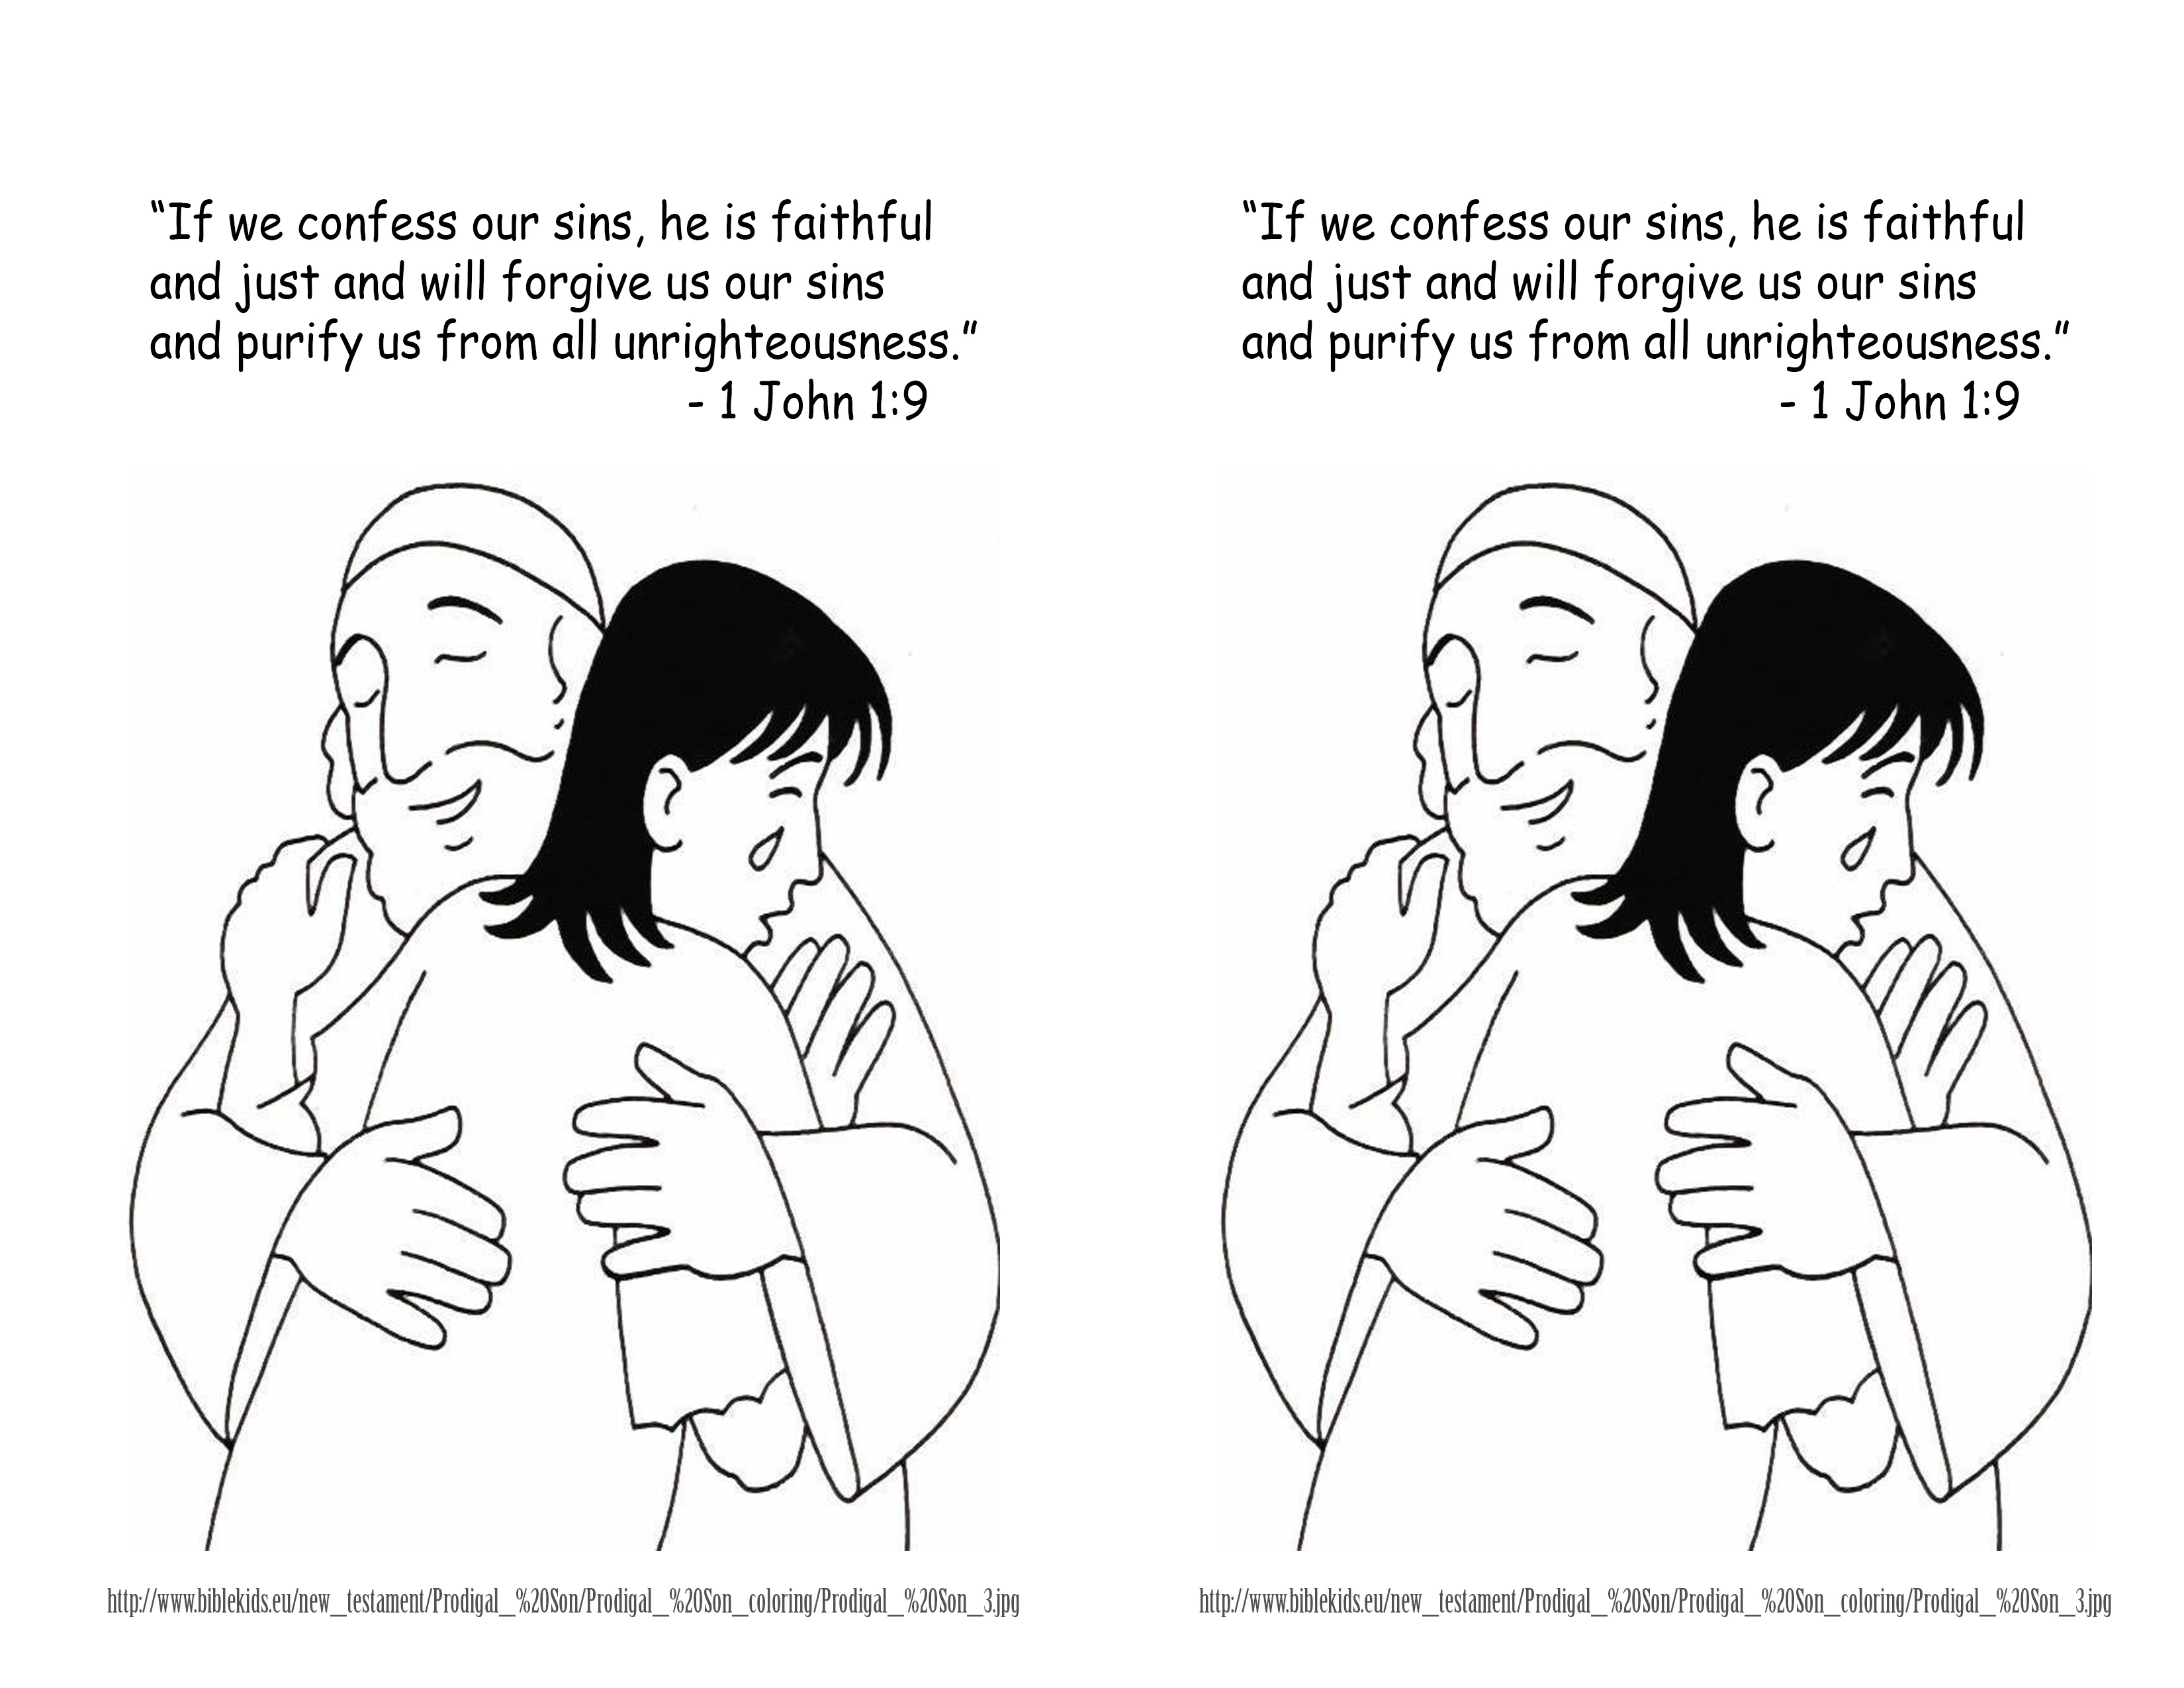 Prodigal son coloring pages for kids - January 6 2014 1 John1 9 Coloring Page